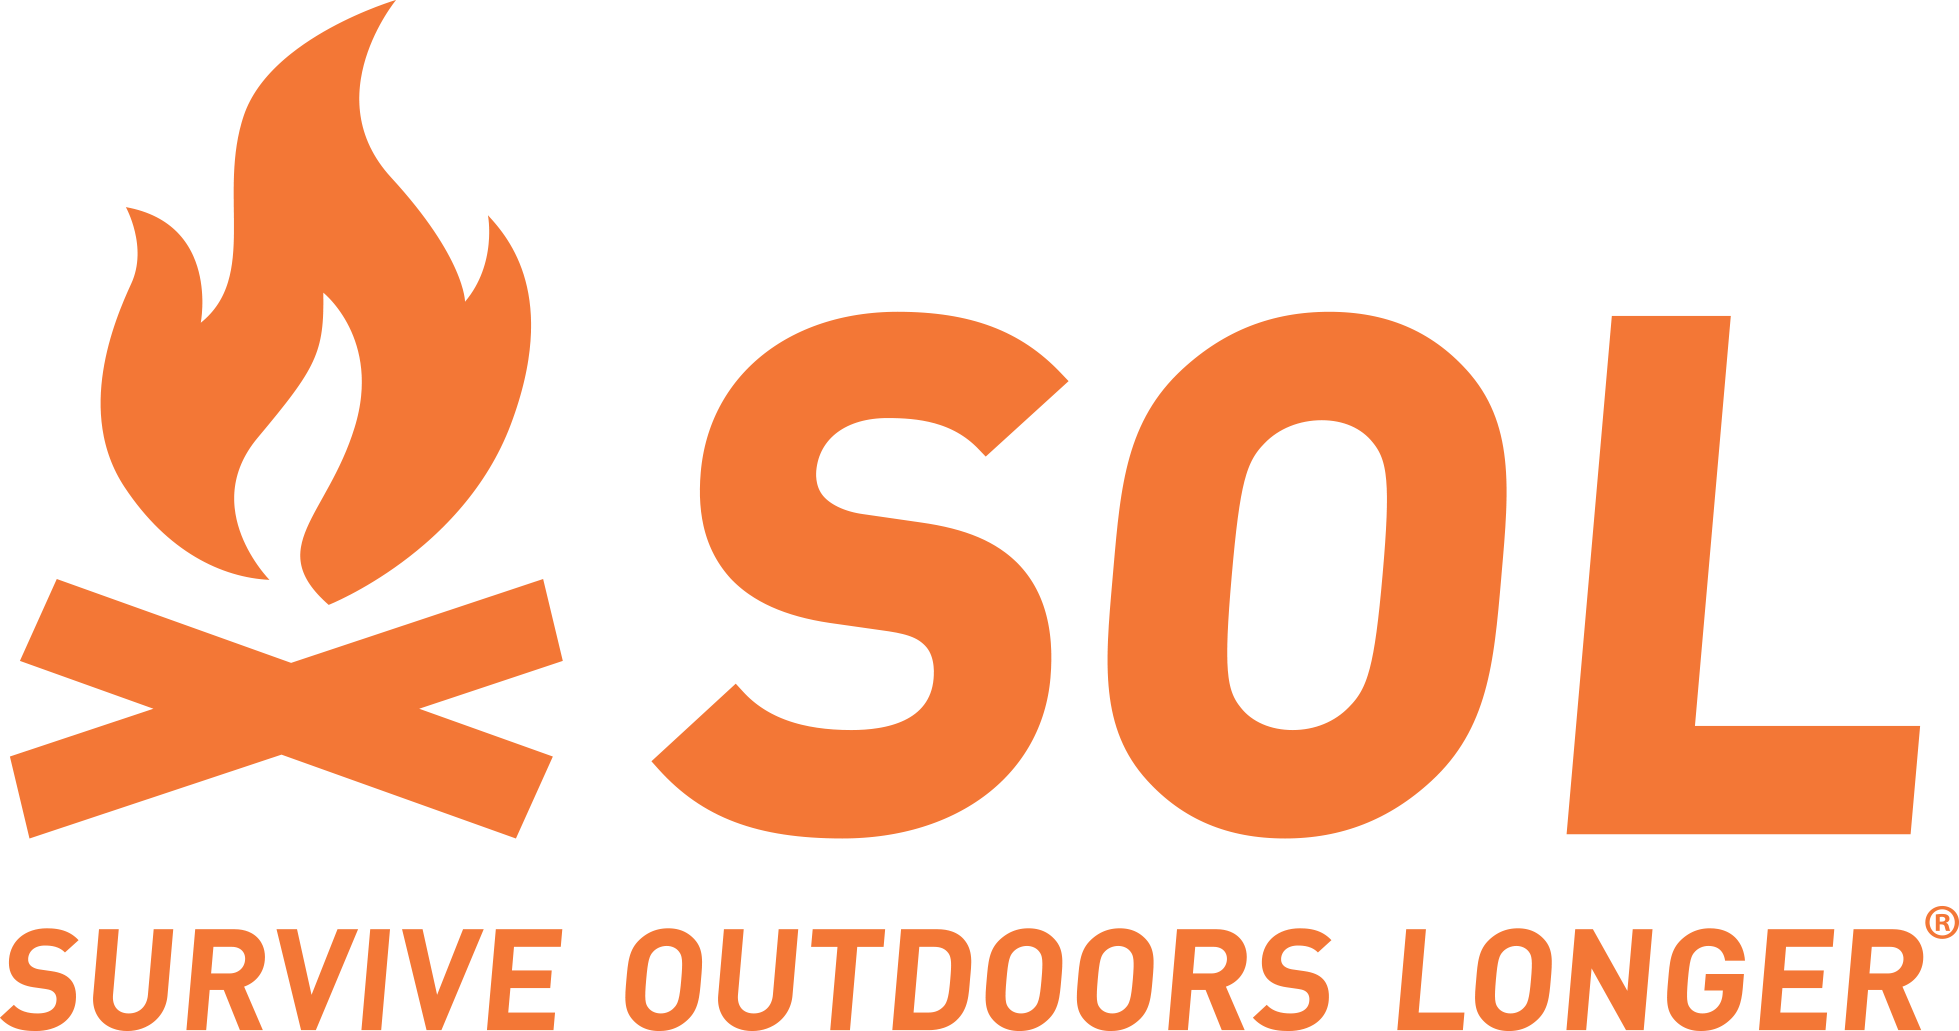 SOL™ is committed to helping you Survive Outdoors Longer by providing you with category-defining tools, kits, and essentials plus instructions, tips, and techniques from experts in the field. Don't run out of luck - get SOL™.